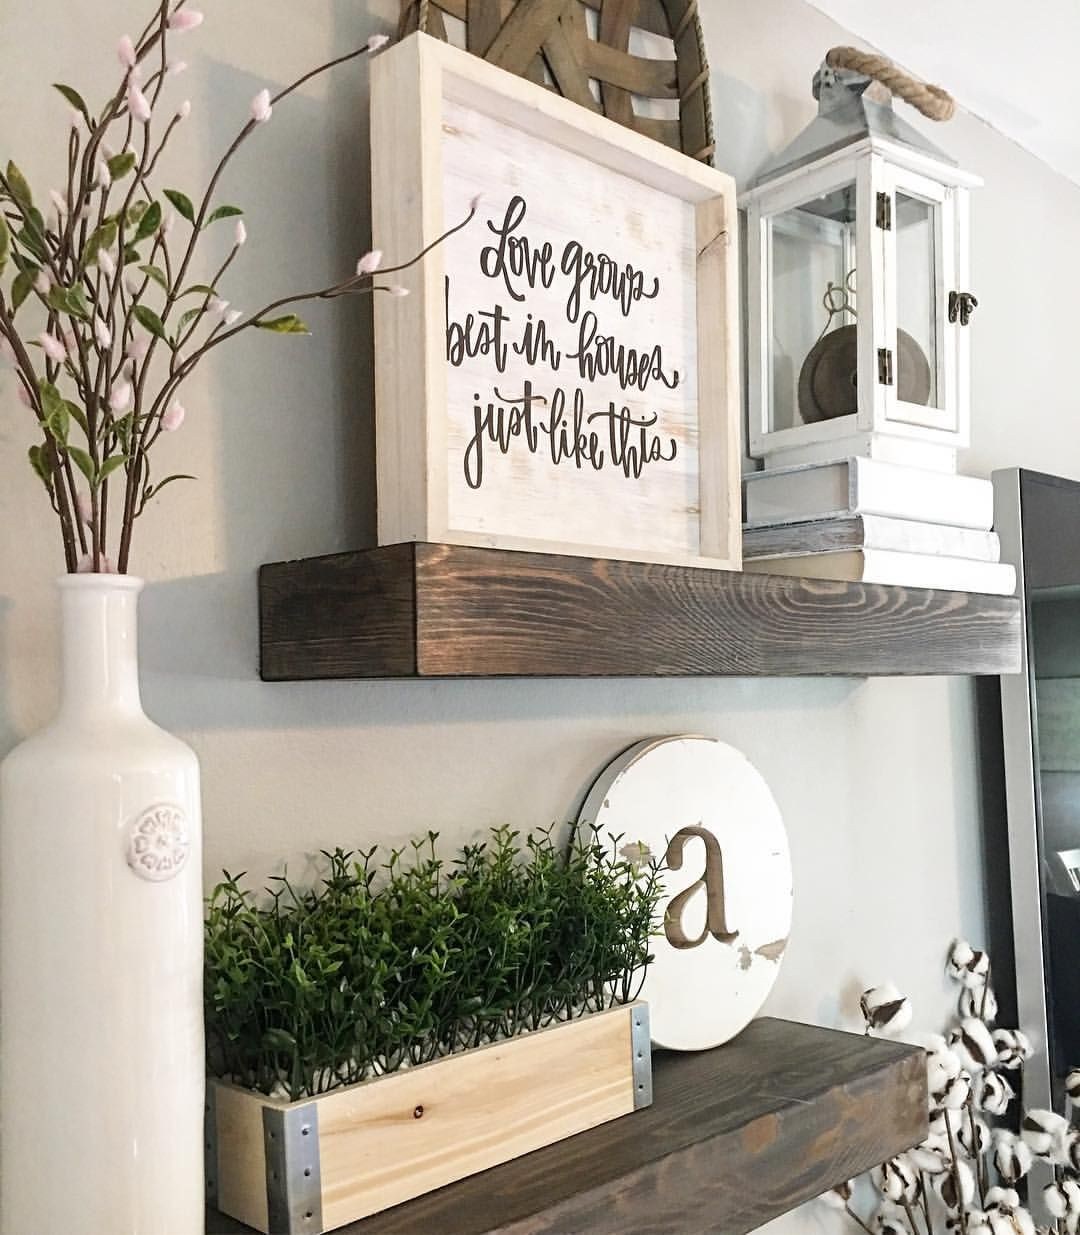 Kitchen Shelf Decor Ideas: Floating Shelves, Wood Shelves, Farmhouse Decor, Farmhouse